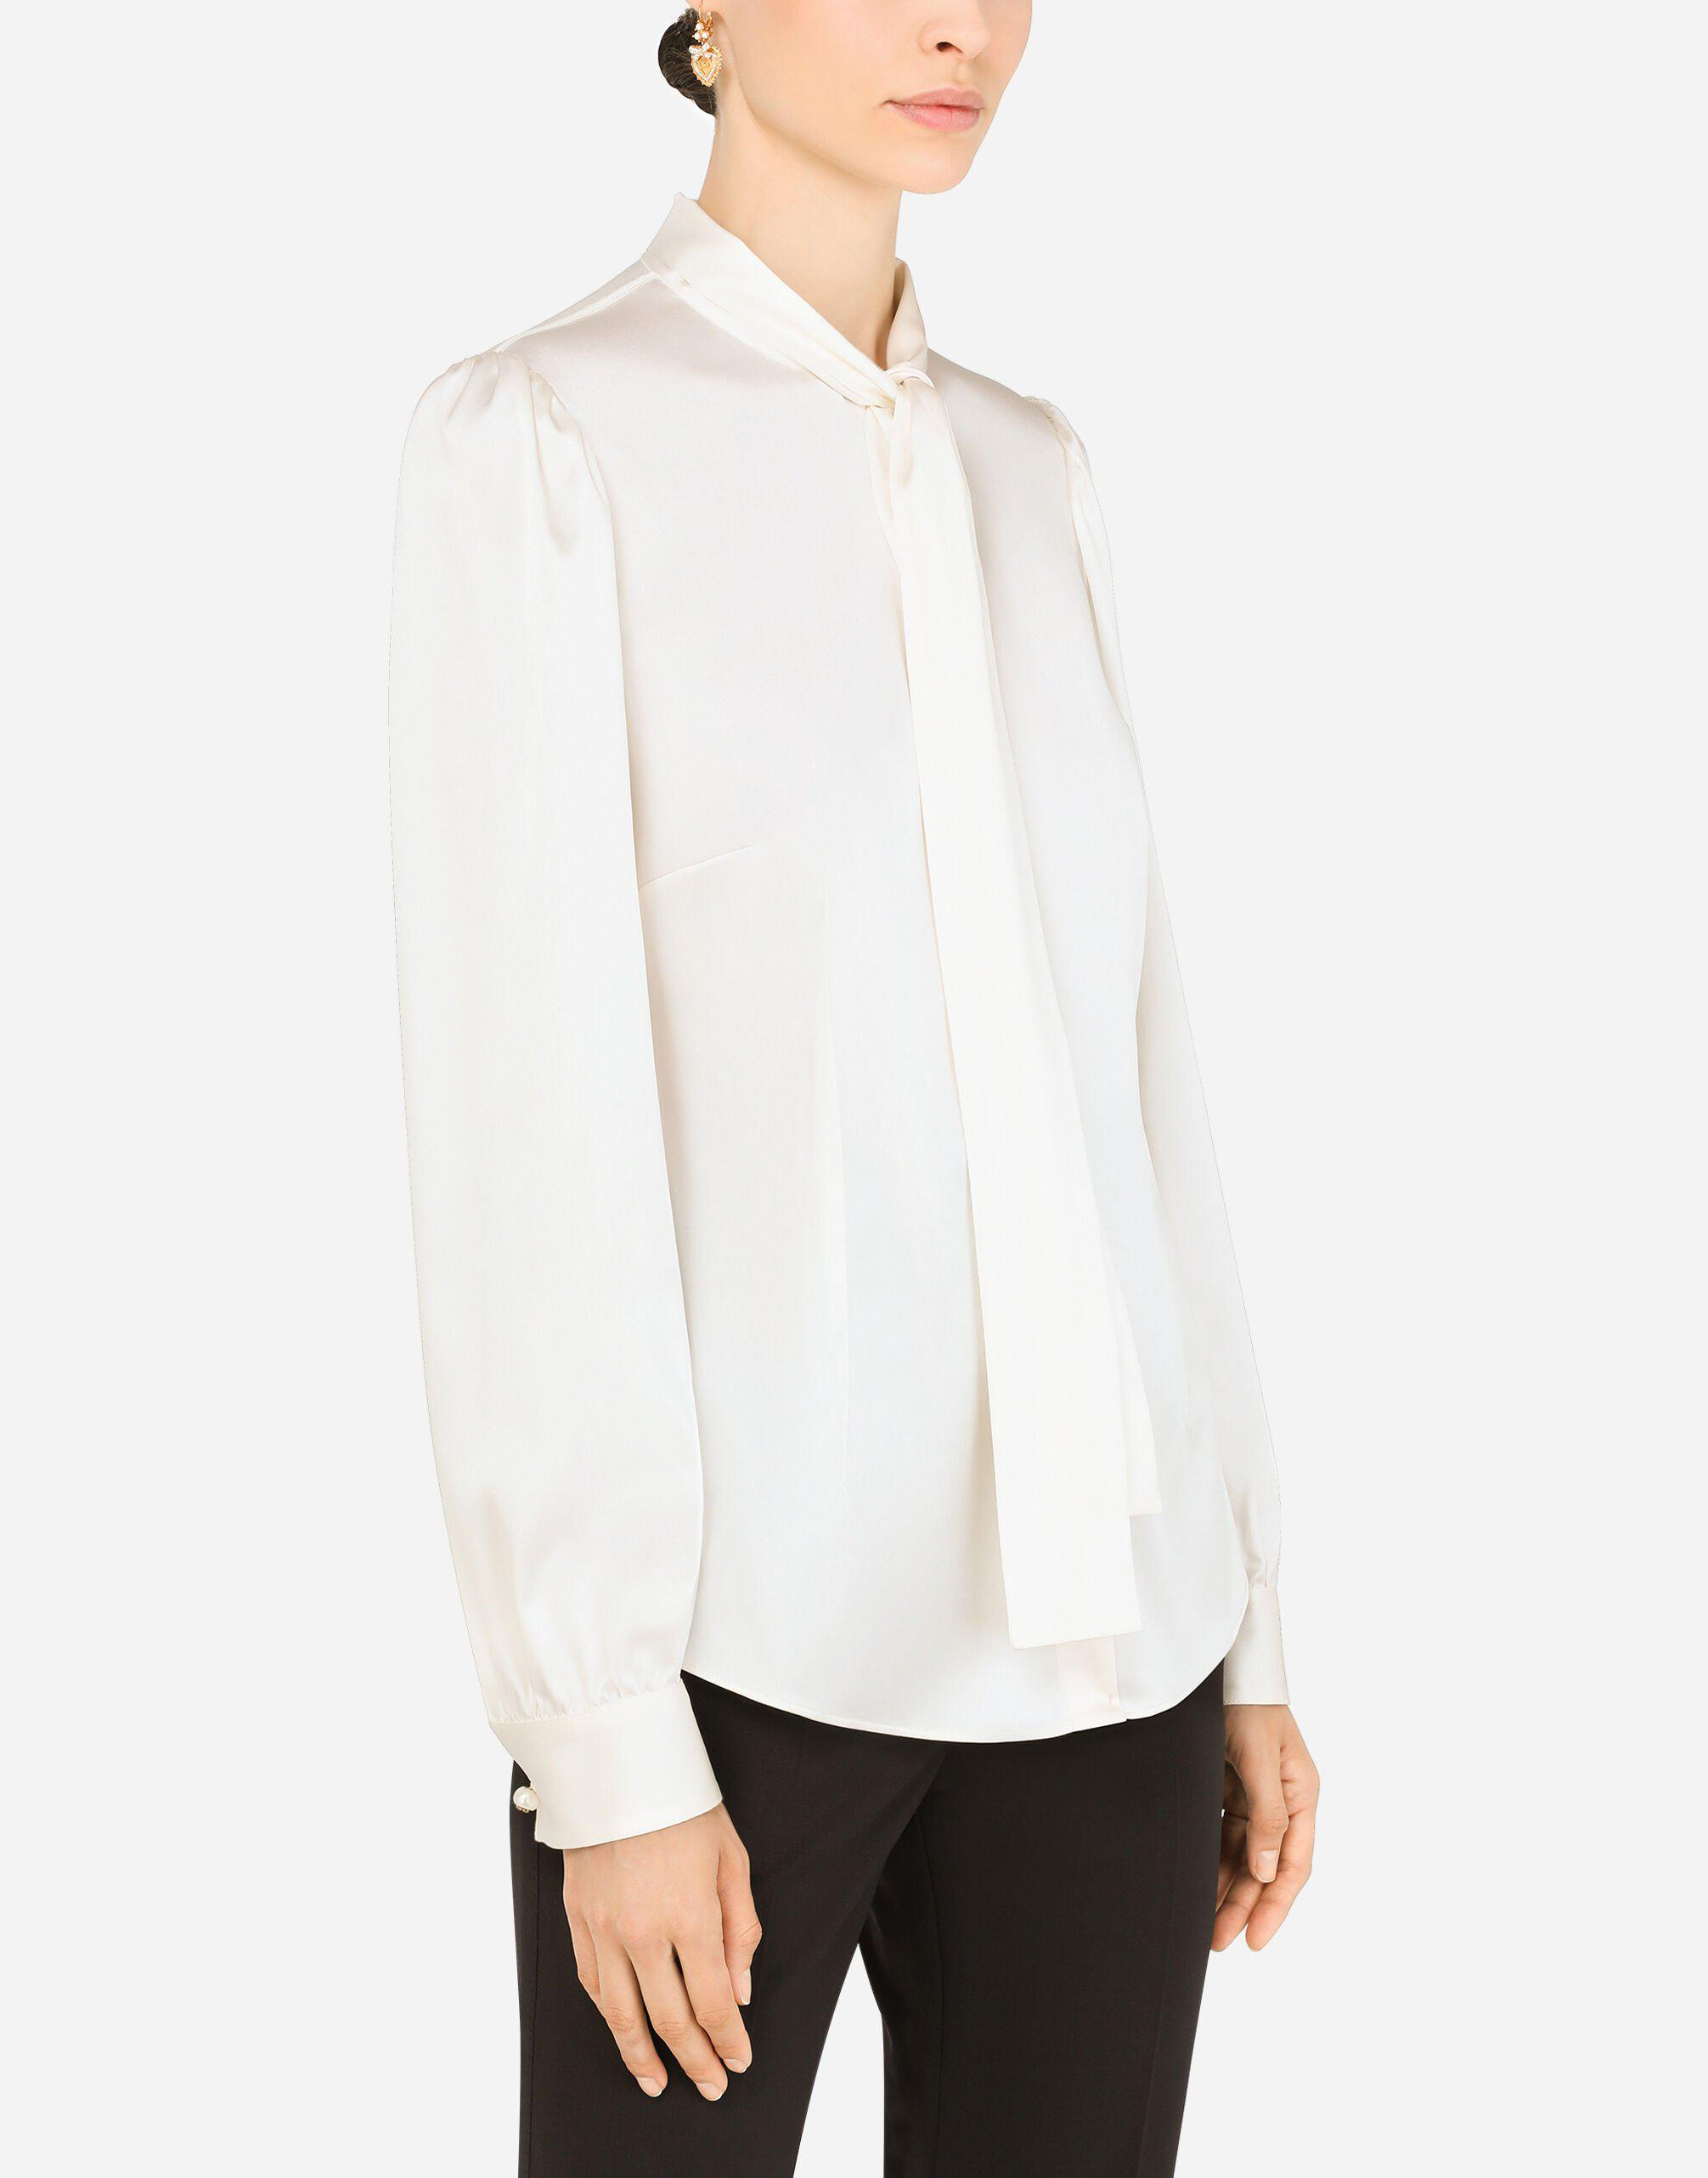 Satin shirt with pearl buttons with DG logo 2